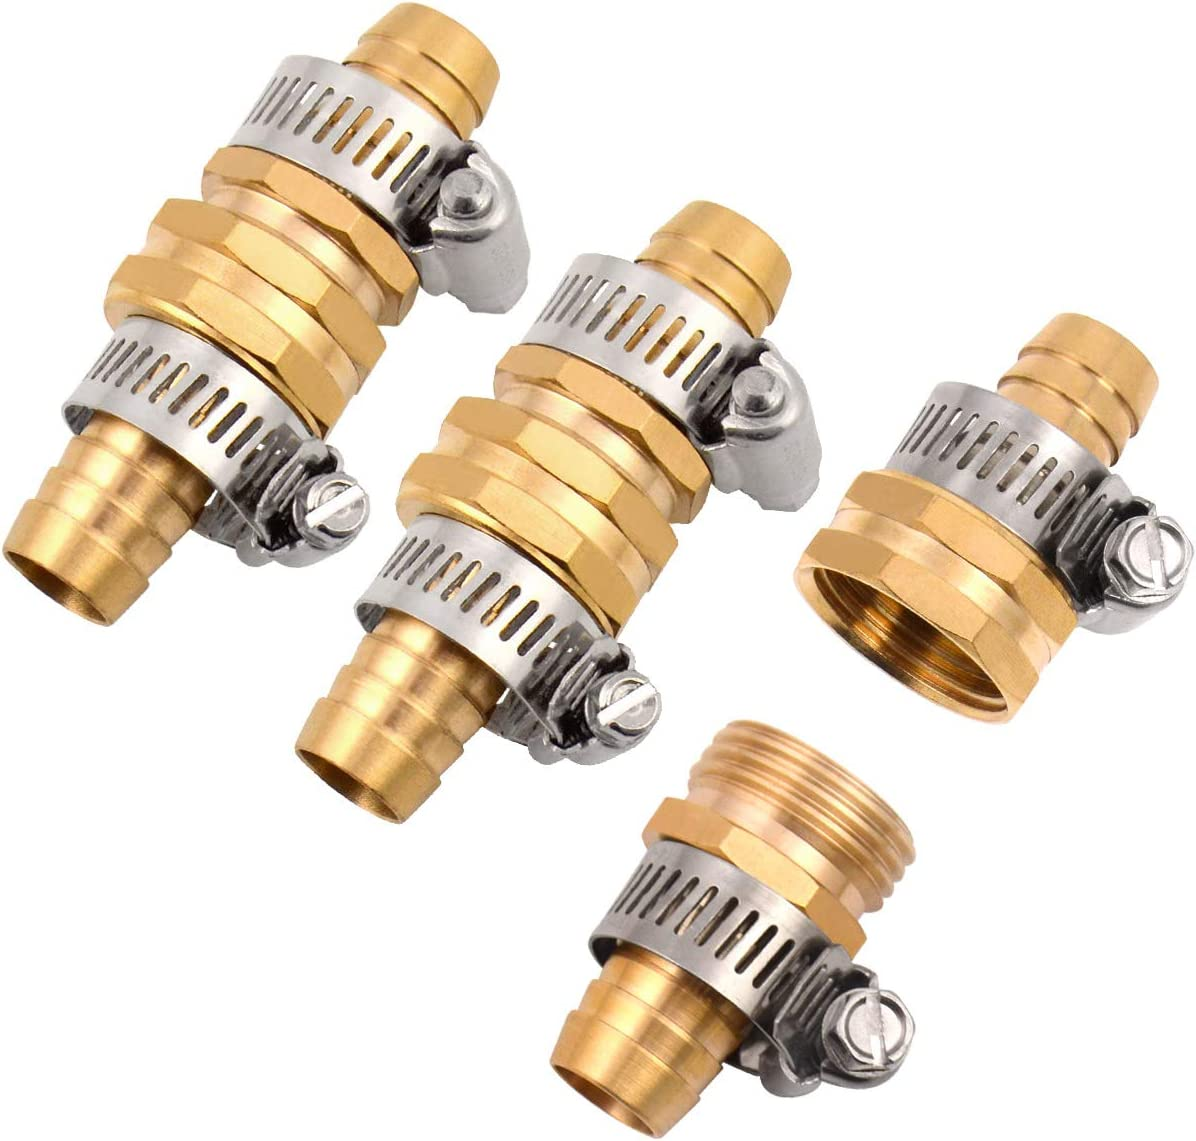 """3Sets Solid Brass Thicken 5/8"""" Garden Hose Mender End Repair Male Female Connector with Stainless Clamp"""